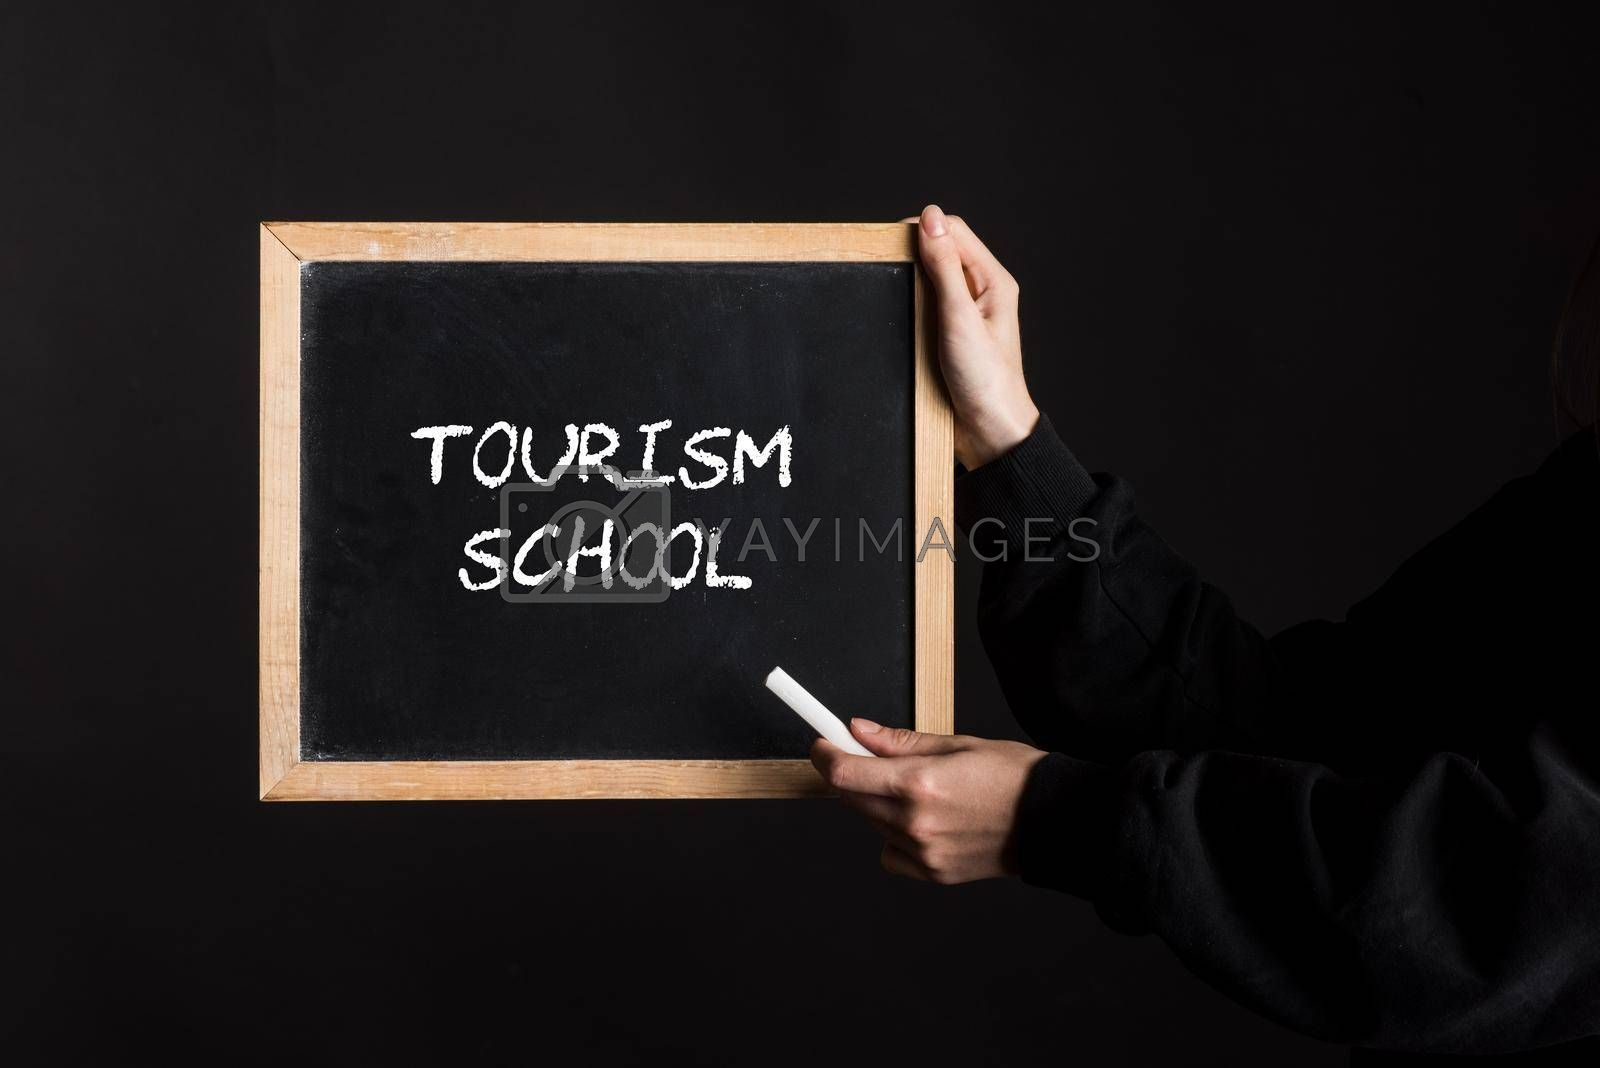 a tourism school or hotel school sign, symbol for education